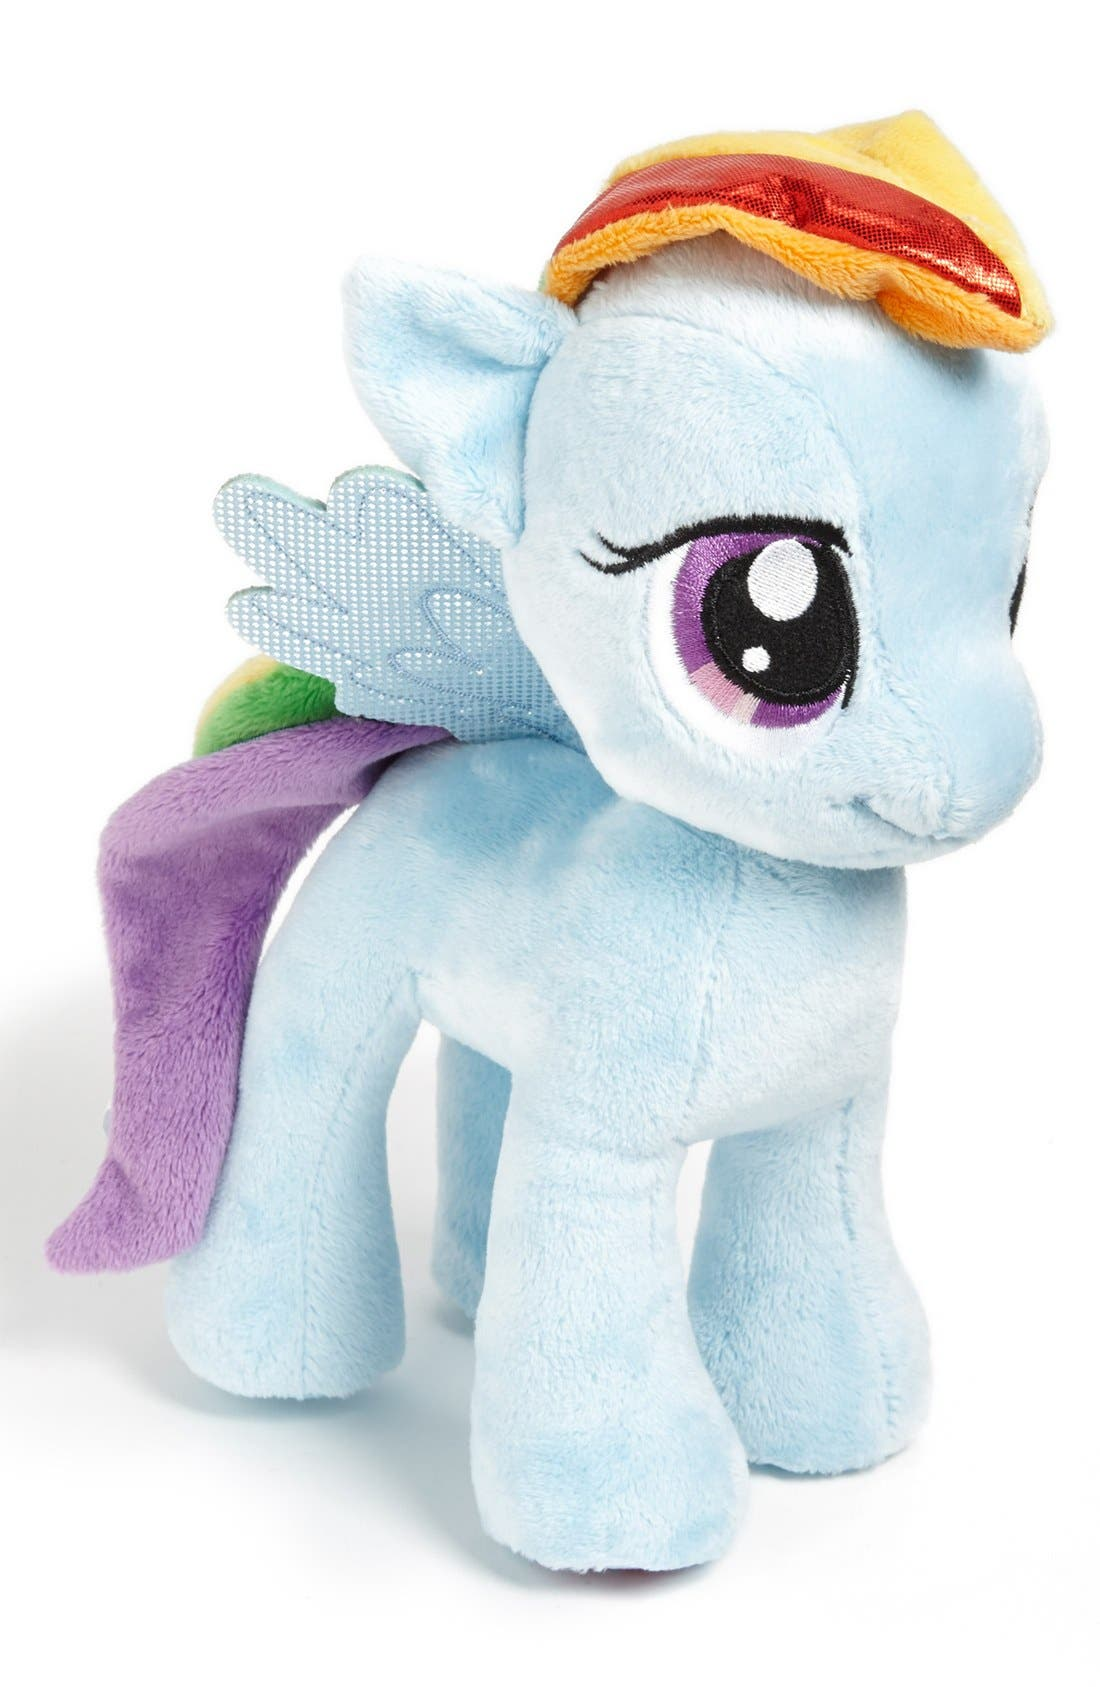 Alternate Image 1 Selected - Aurora World Toys 'My Little Pony® - Rainbow Dash®' Stuffed Animal (10 Inch)